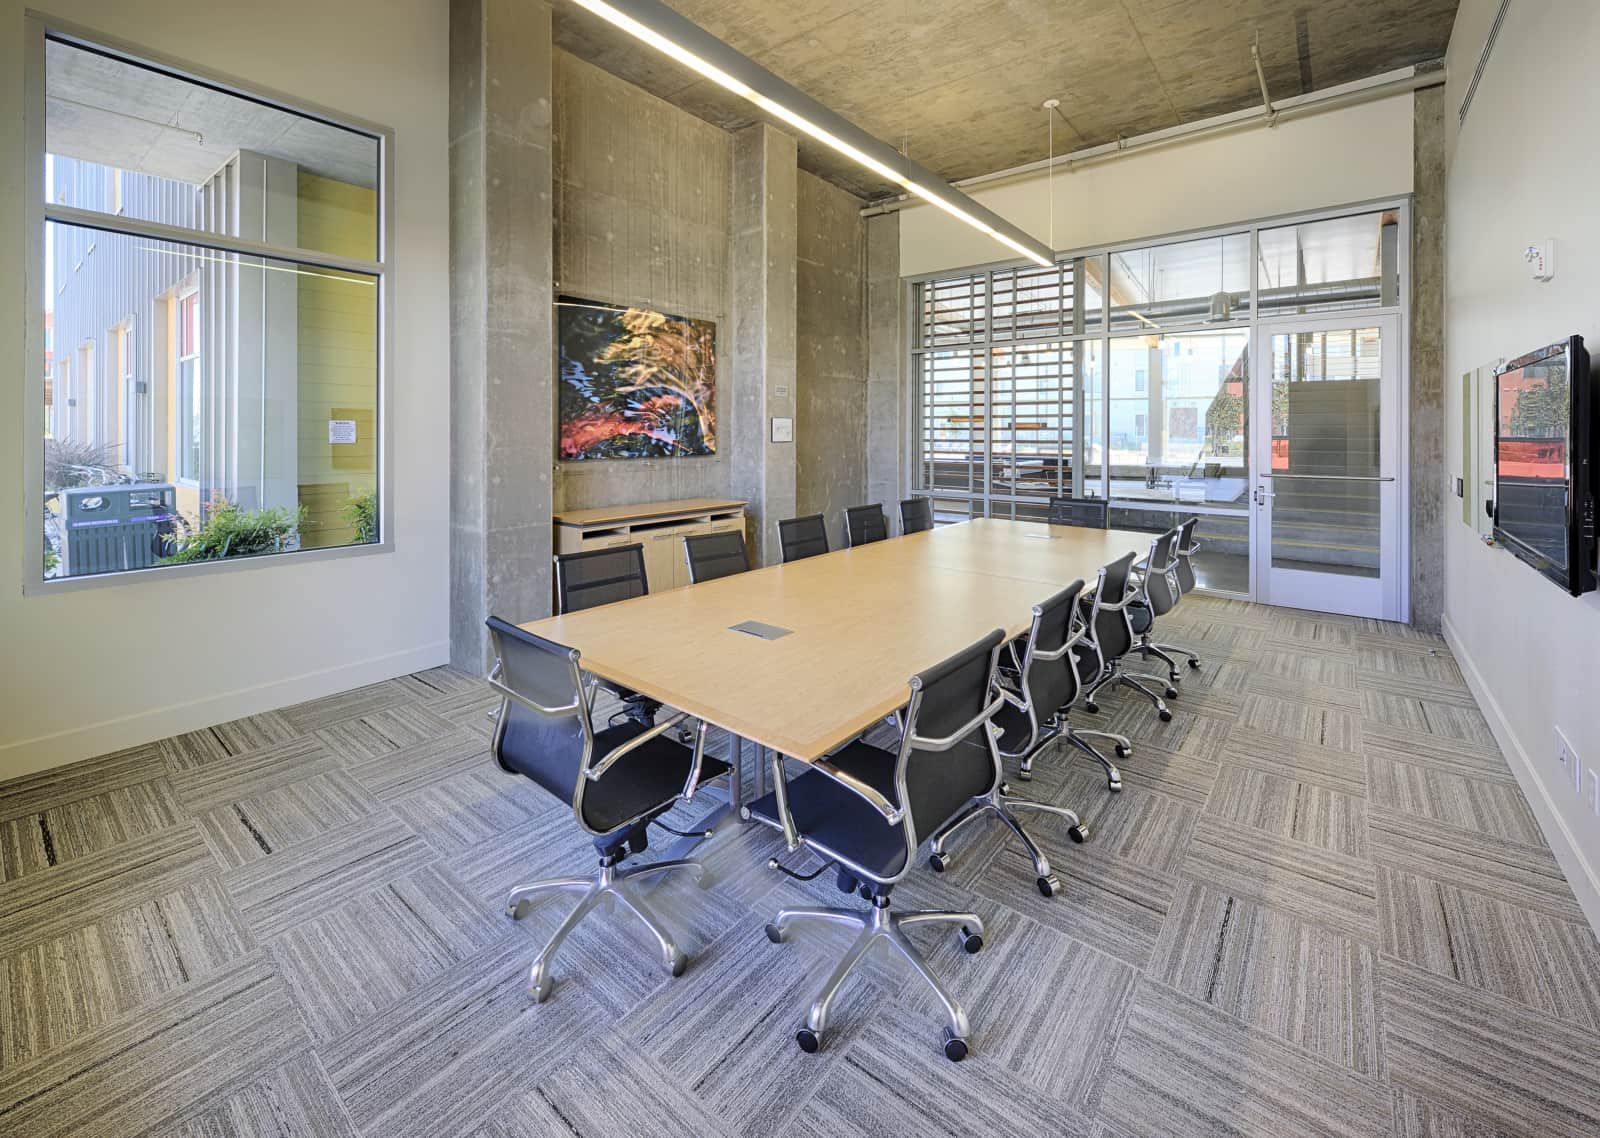 Conference room with a large table, chairs, white board and TV..